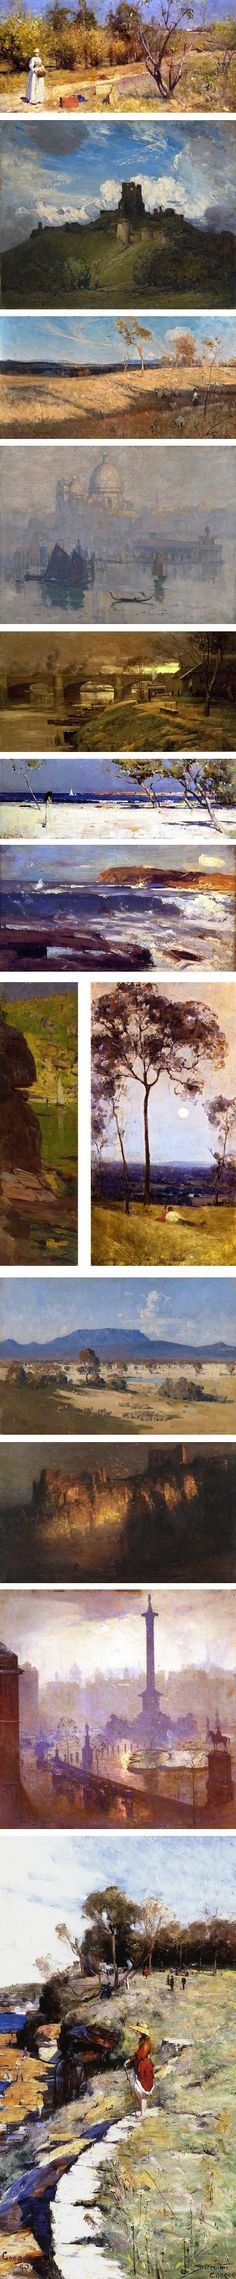 Arthur Streeton, Australian, late 19th and early 20th centuries; landscapes; official war artist during WW-1